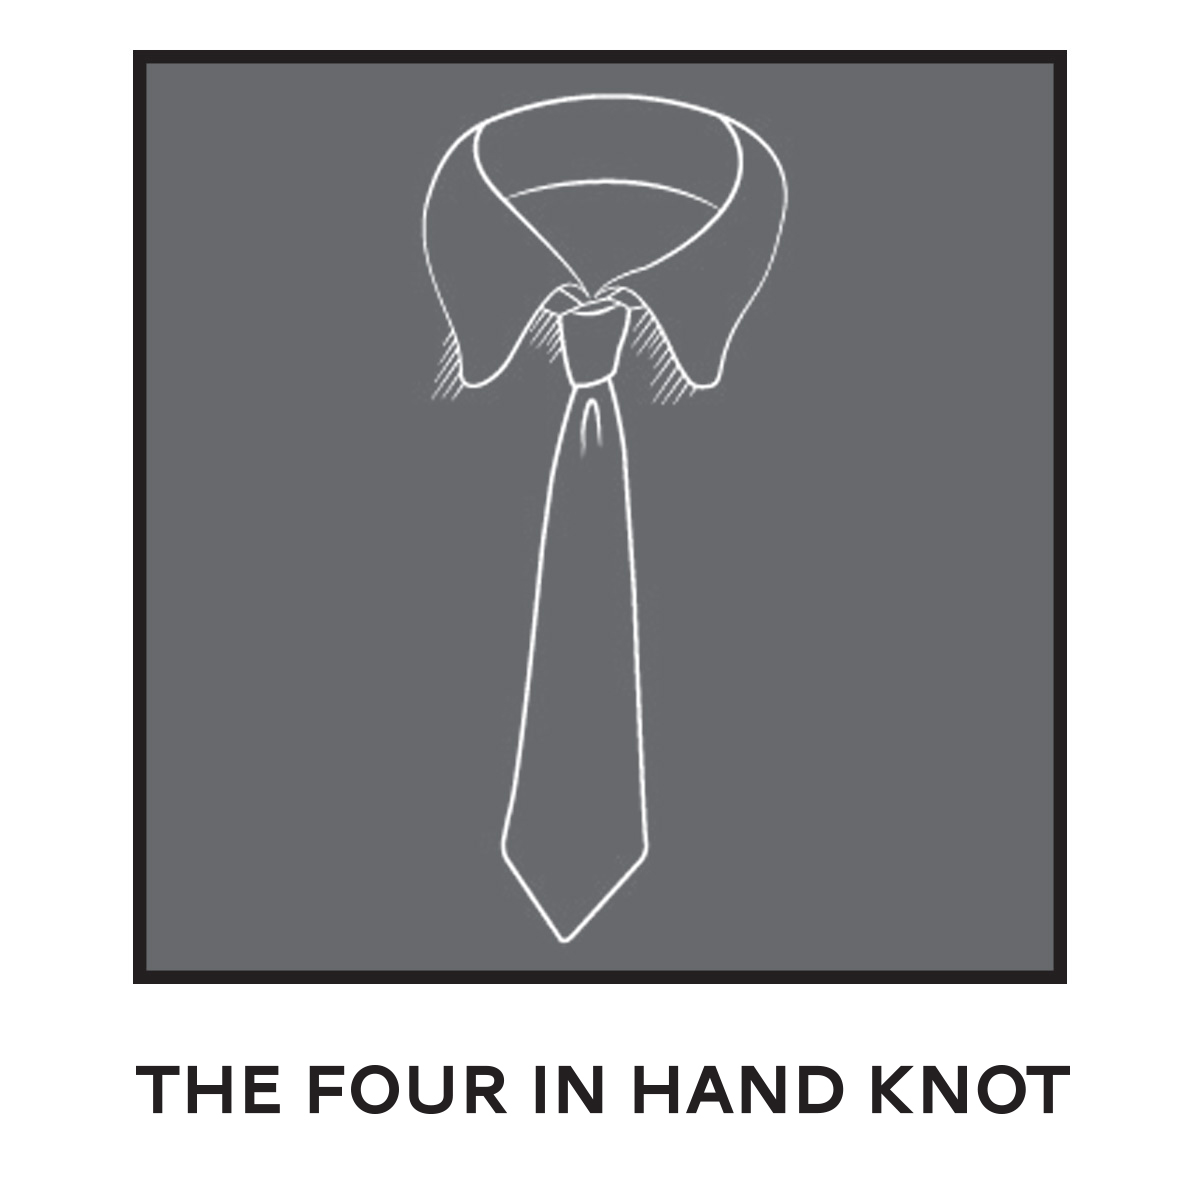 Tie Four In Hand Knot